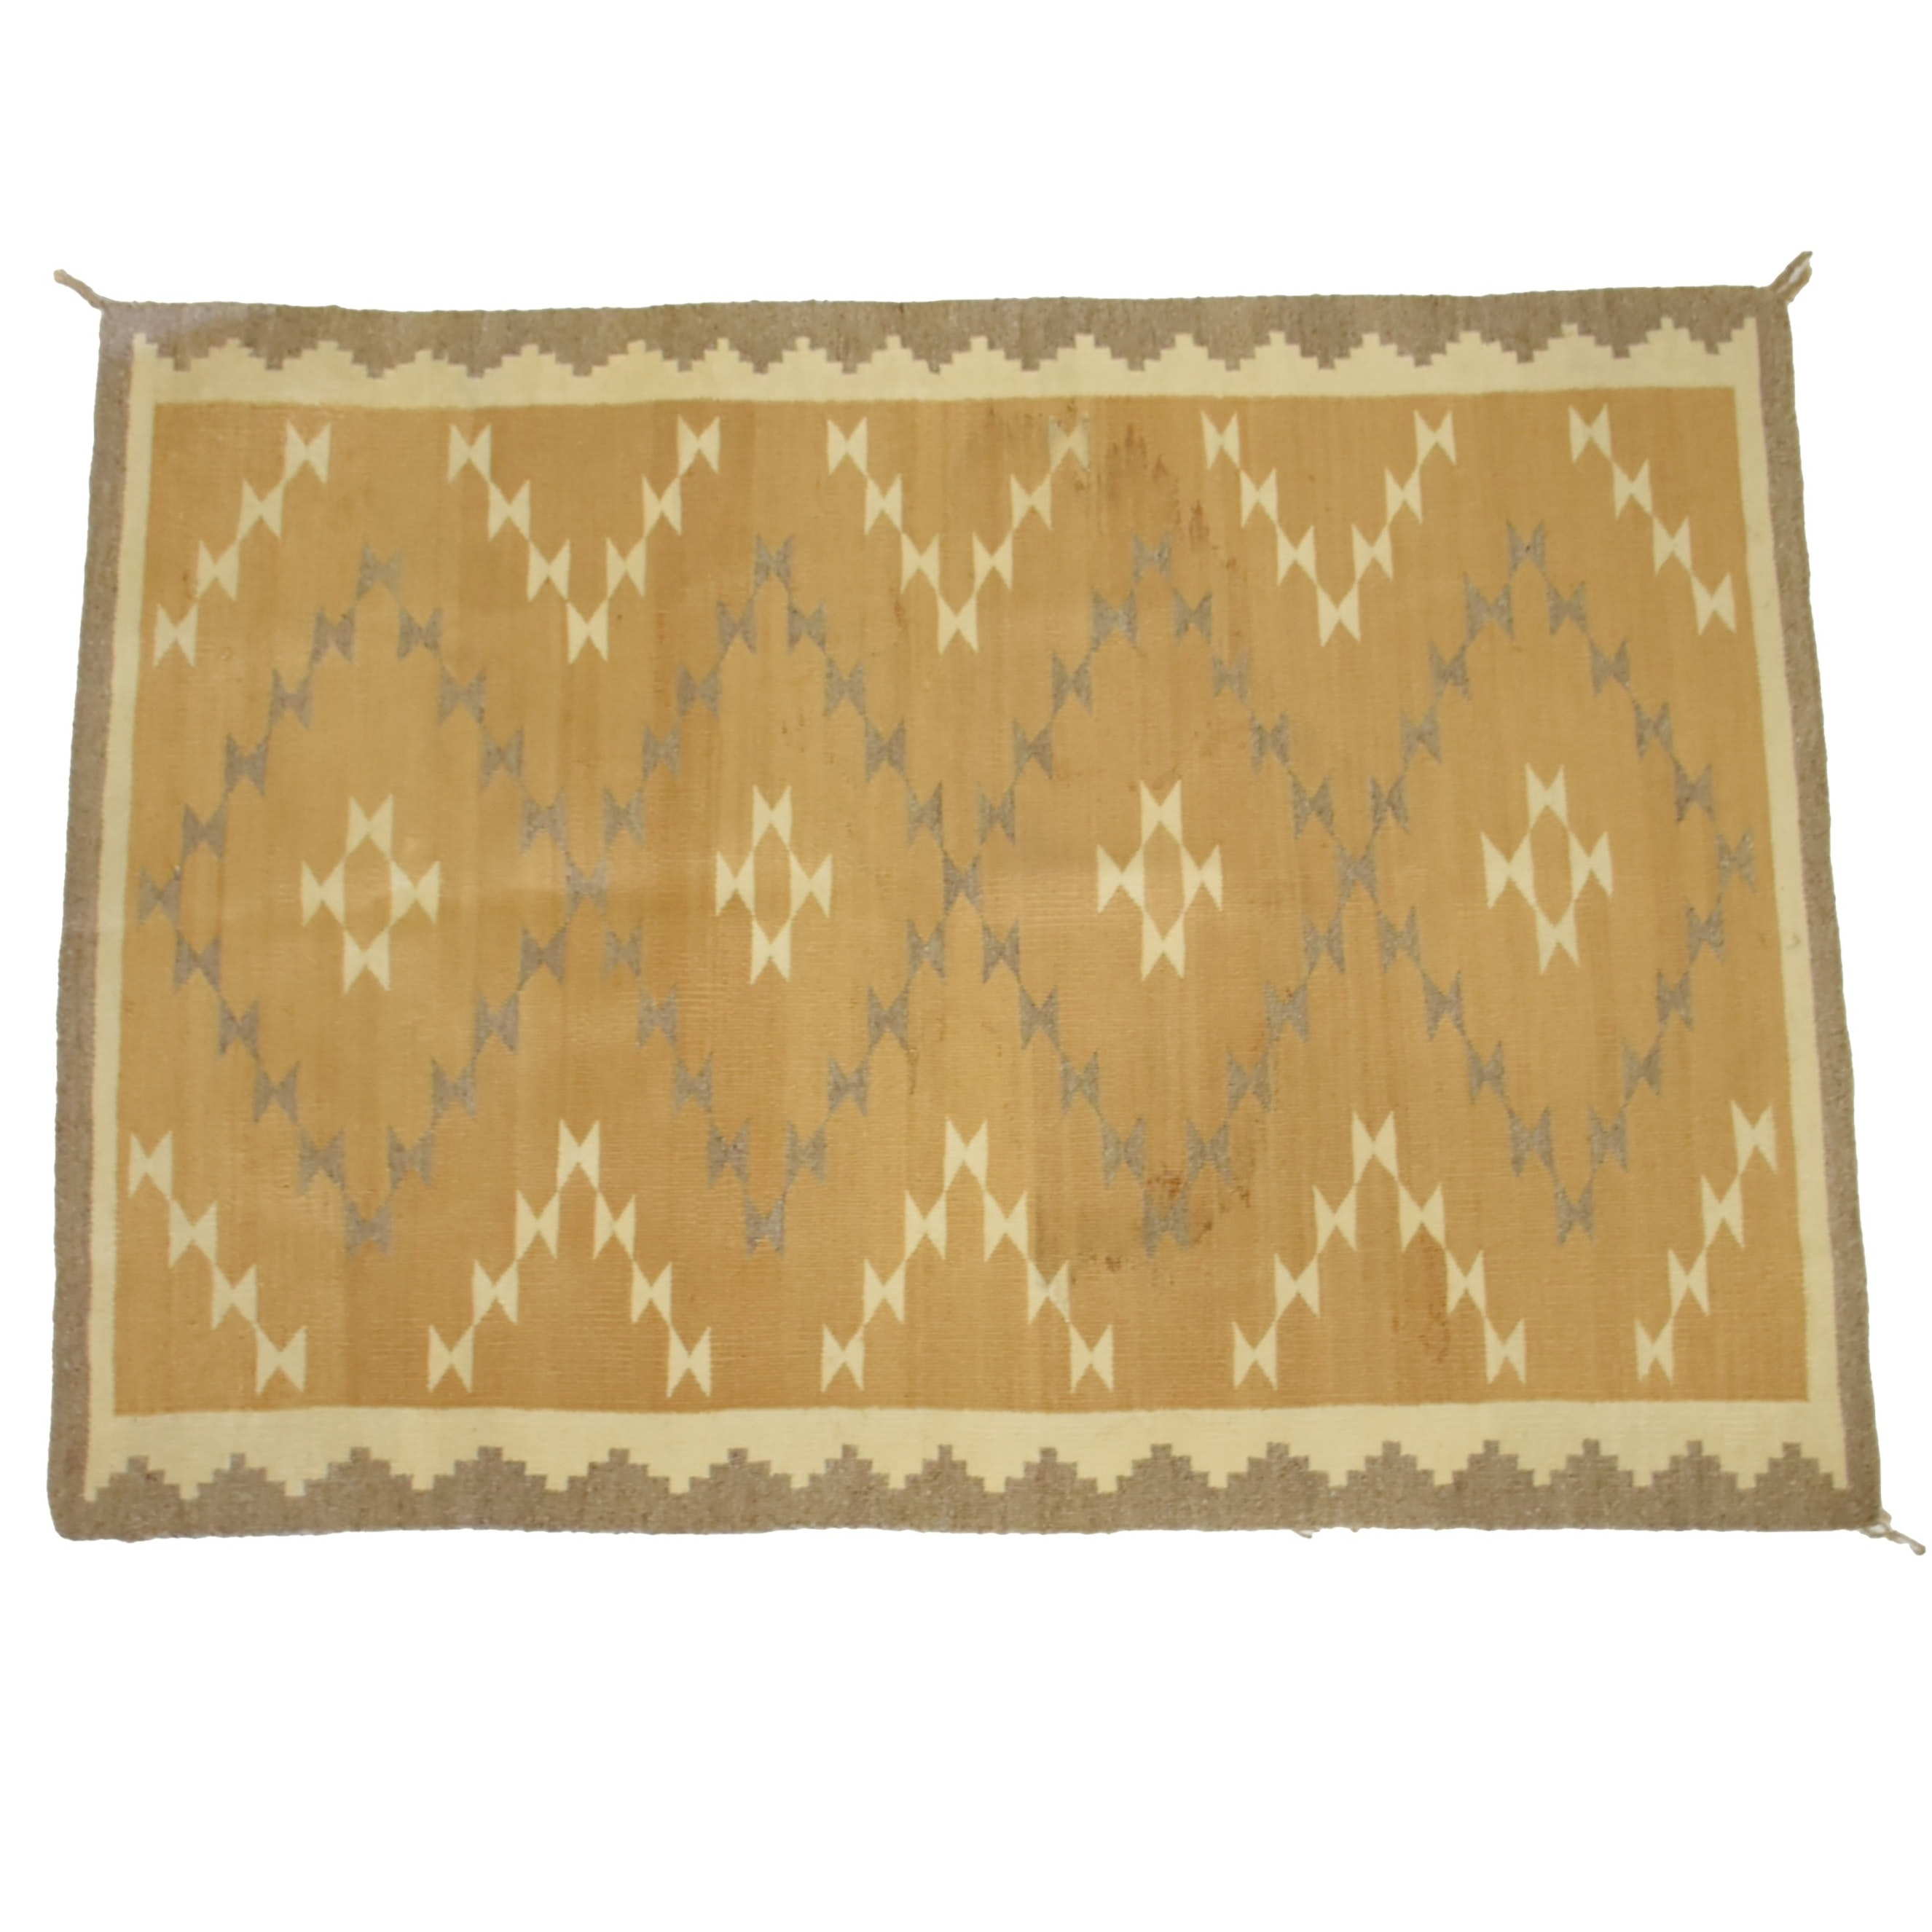 Early 20th Century Navajo Hand Woven Wool Rug in Tan and  Camel